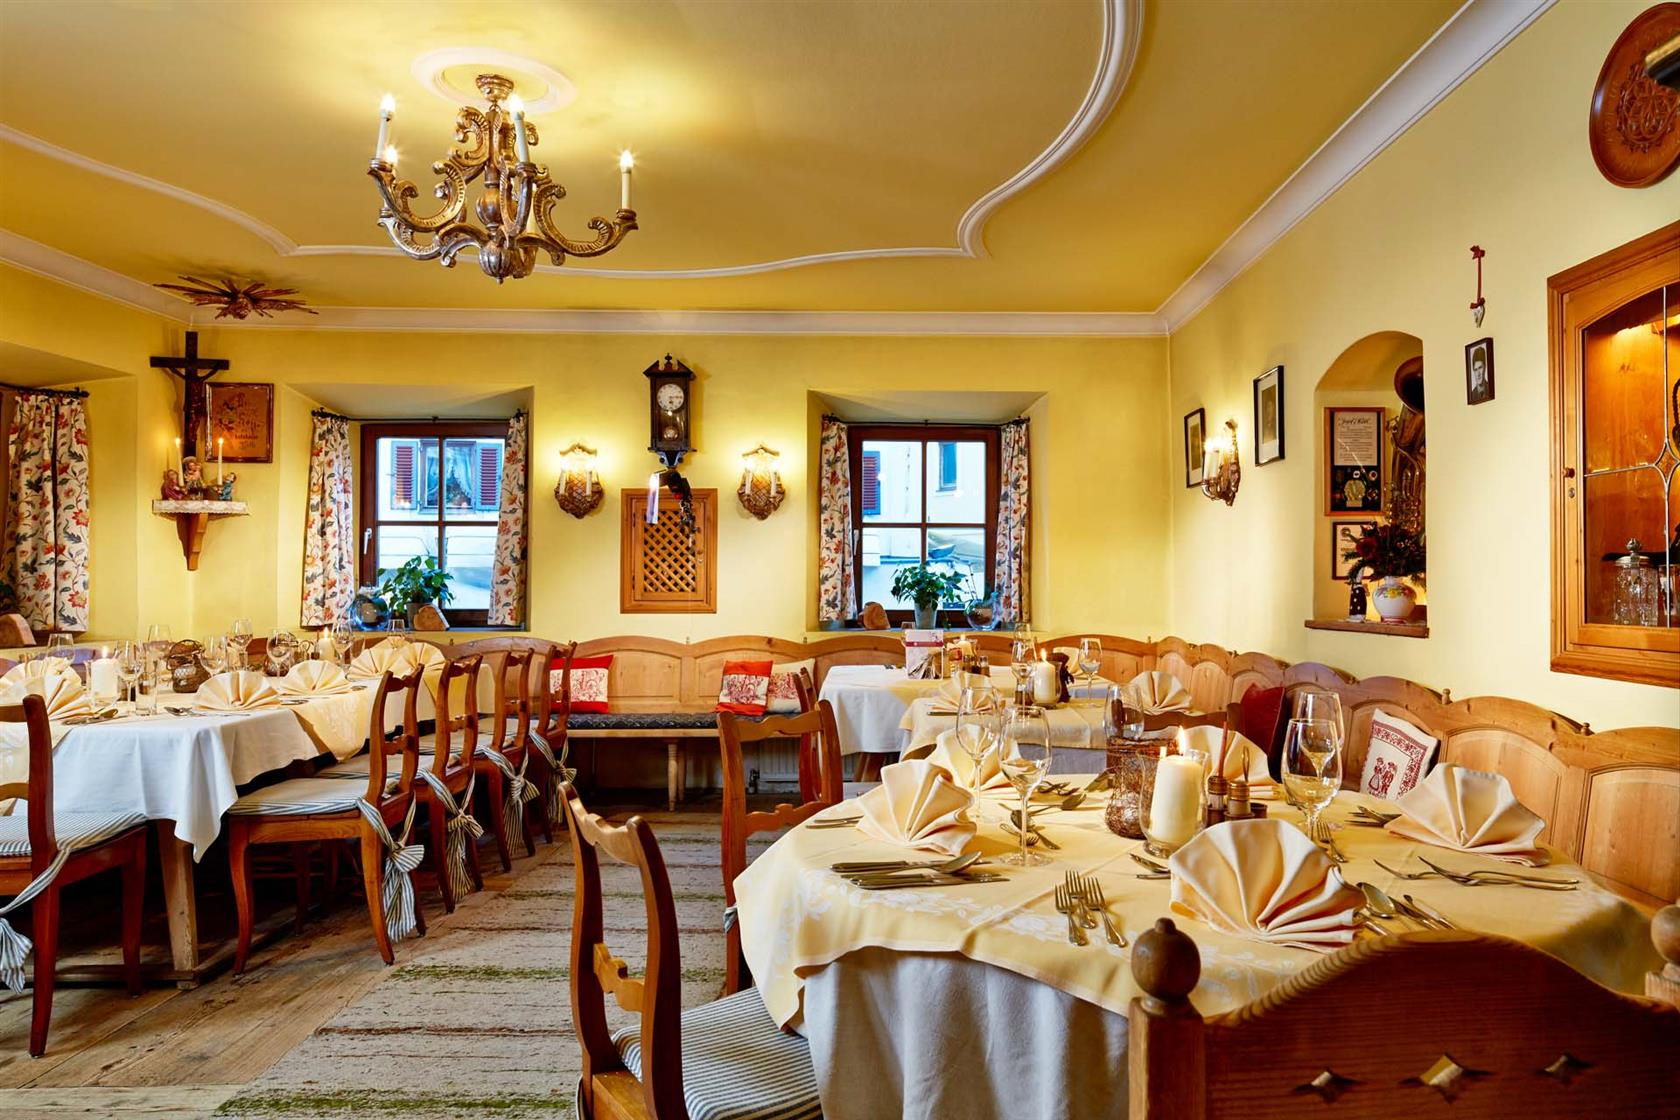 Romantic hotel in zell am see 4 romantikhotel for Living room zell am see